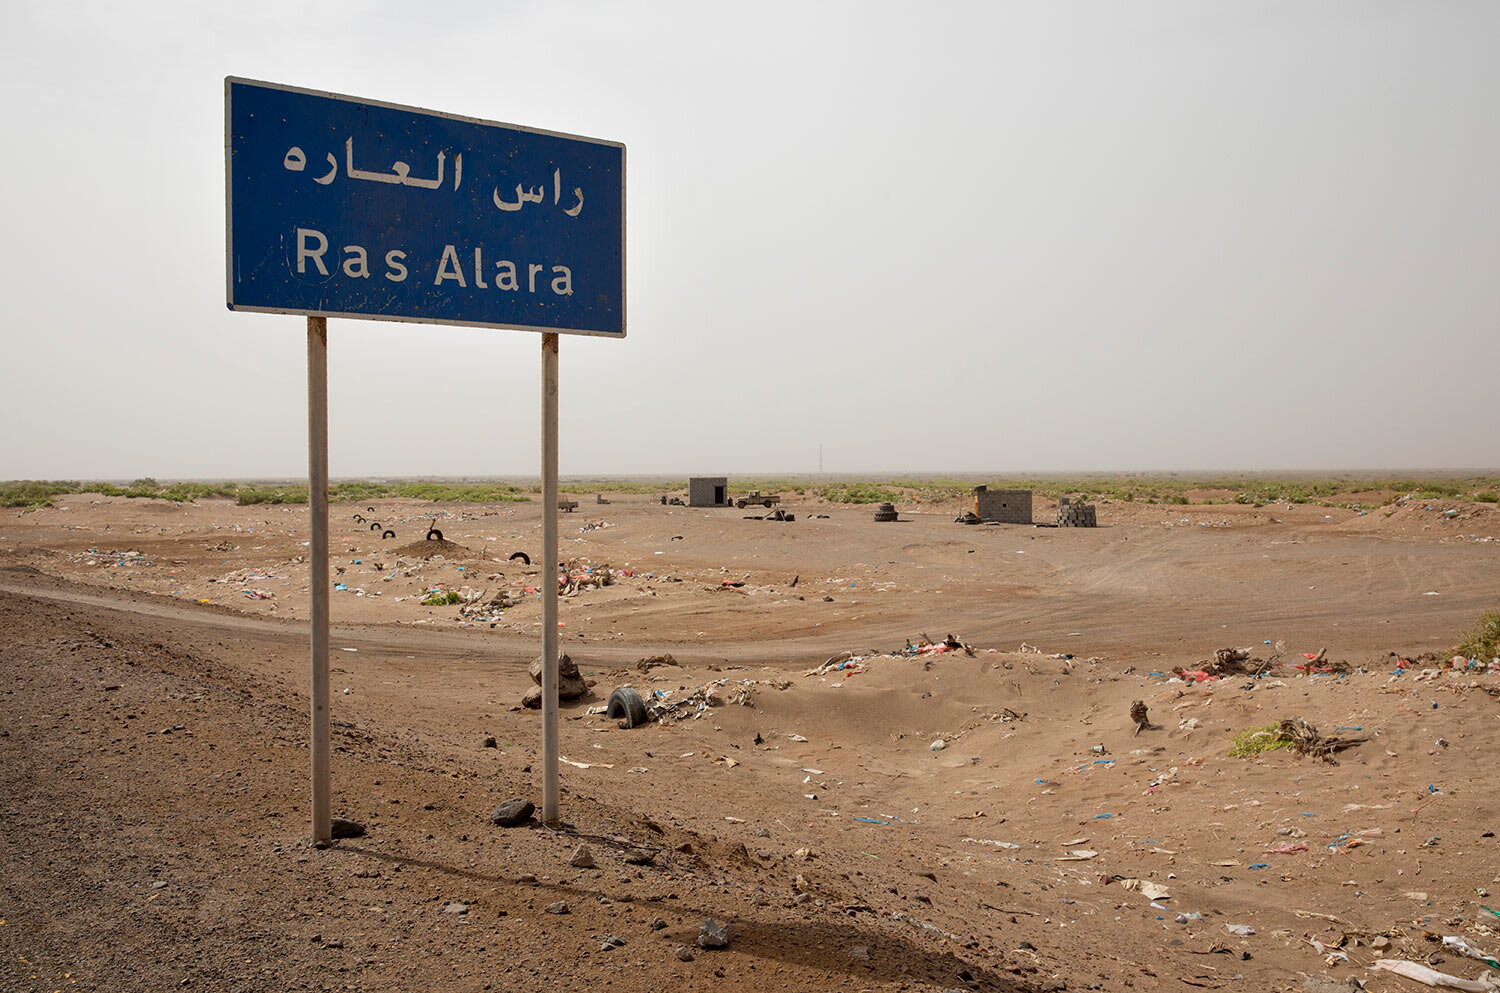 A road sign leading to the coastal village of Ras al-Ara, Lahj, Yemen. (AP Photo/Nariman El-Mofty)